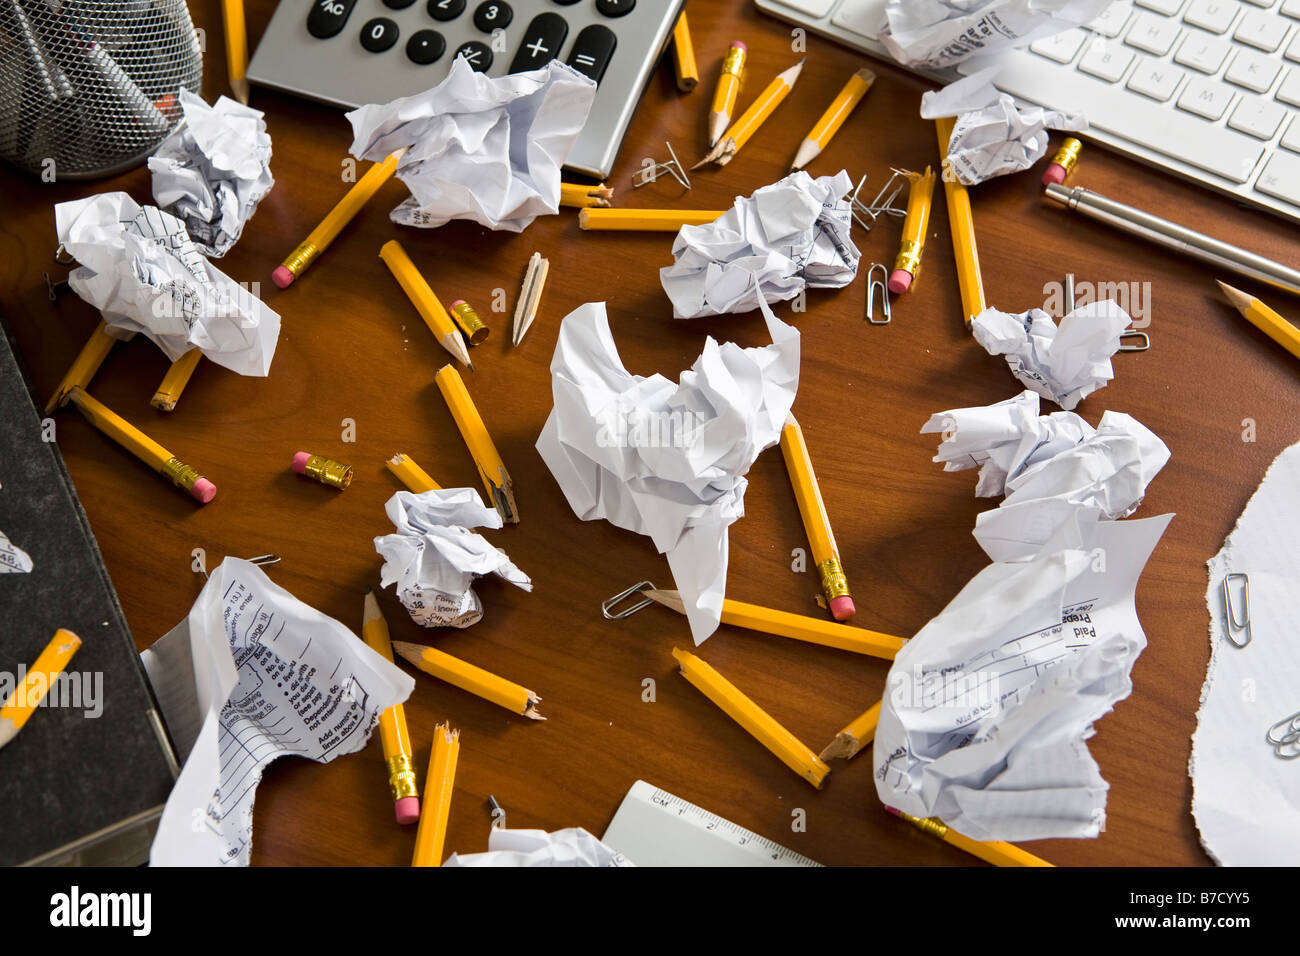 An office desk cluttered with pencils and crumpled paper - Stock Image